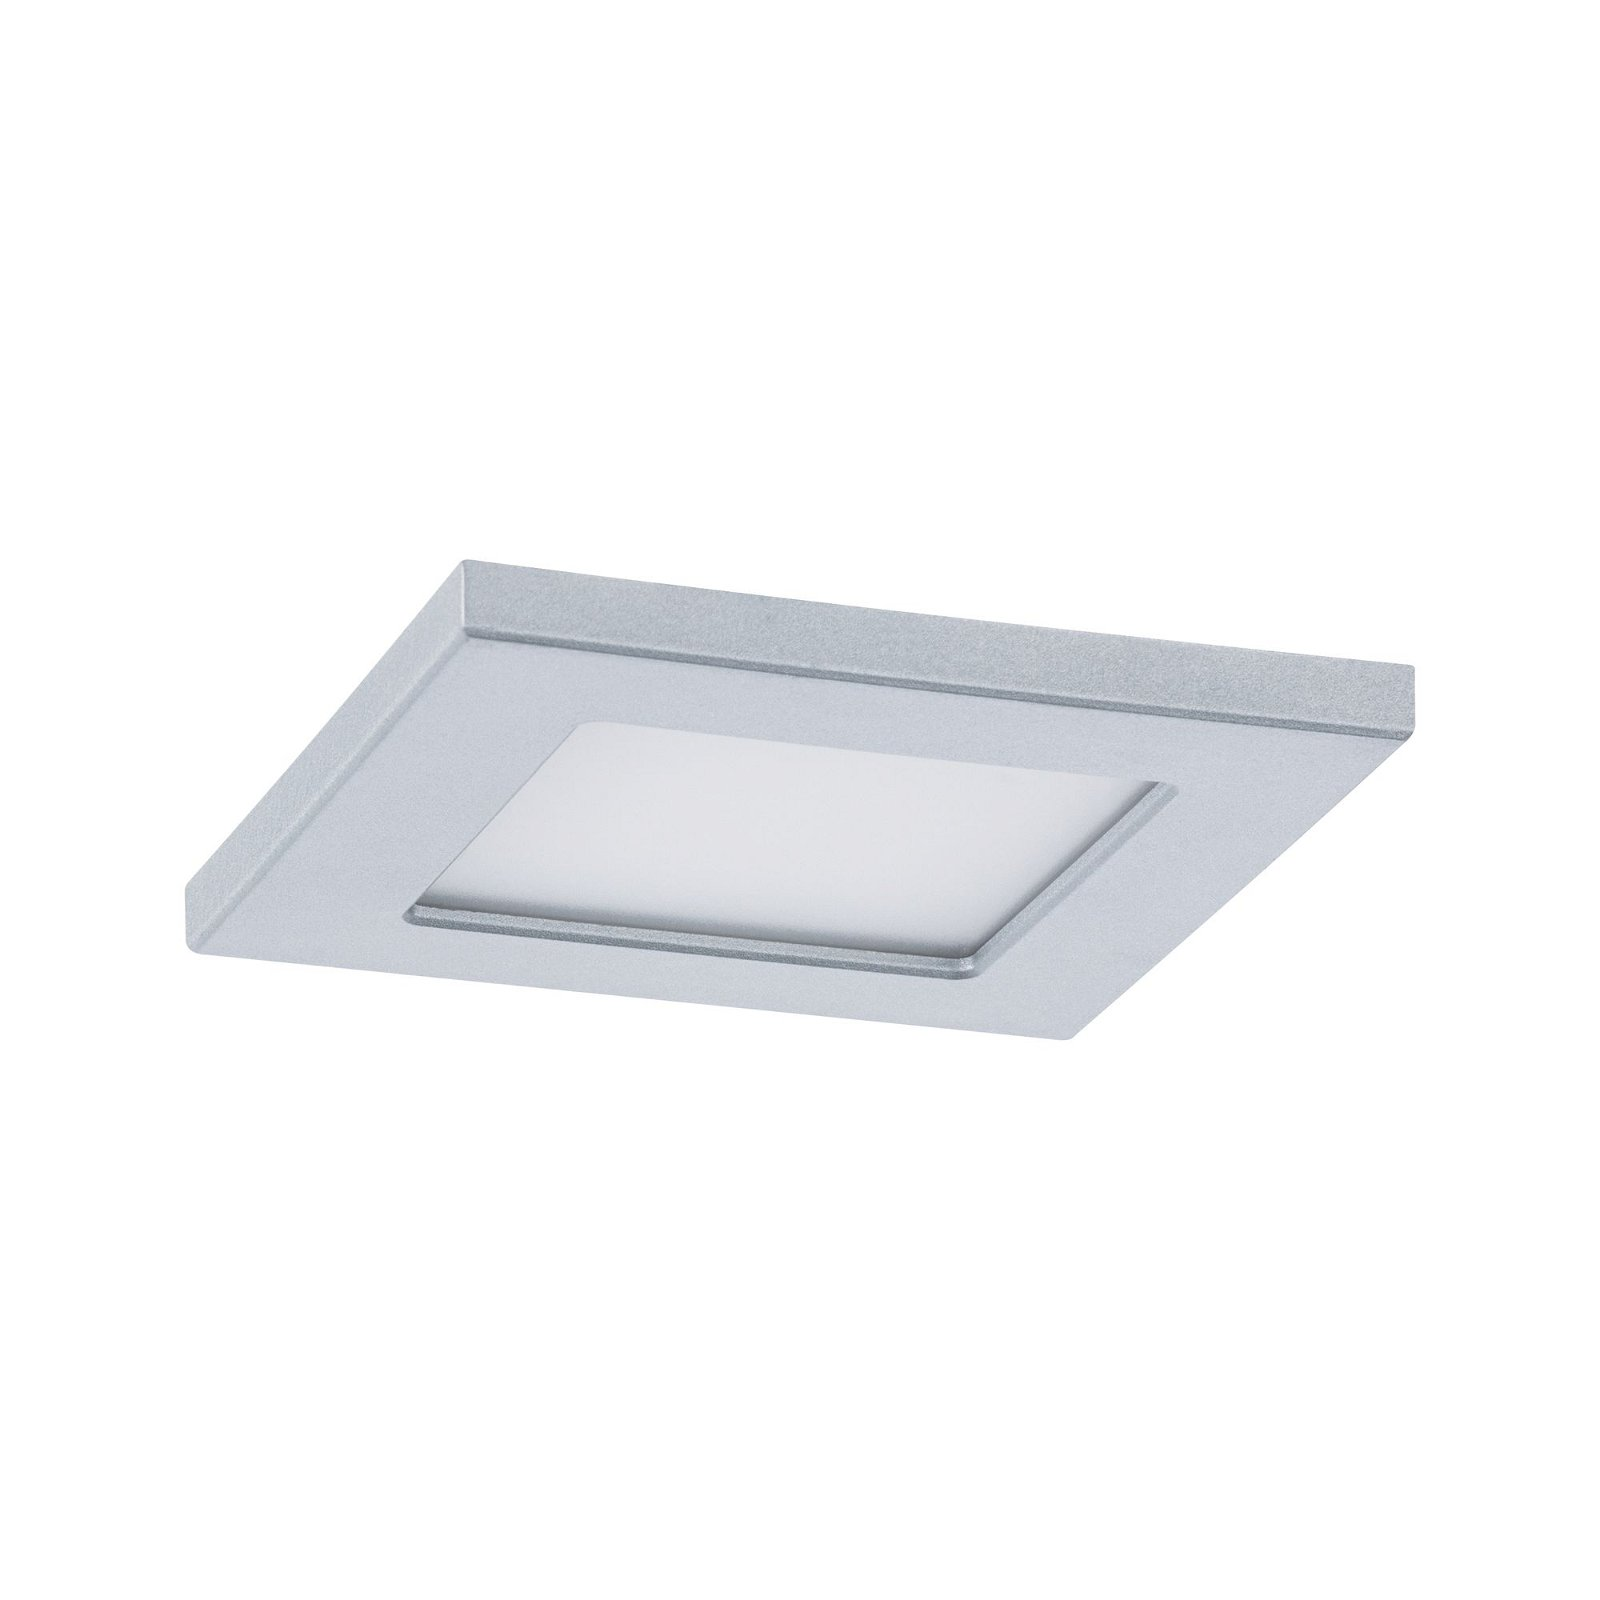 Clever Connect LED-spot Pola Tunable White 2,5W Chroom mat